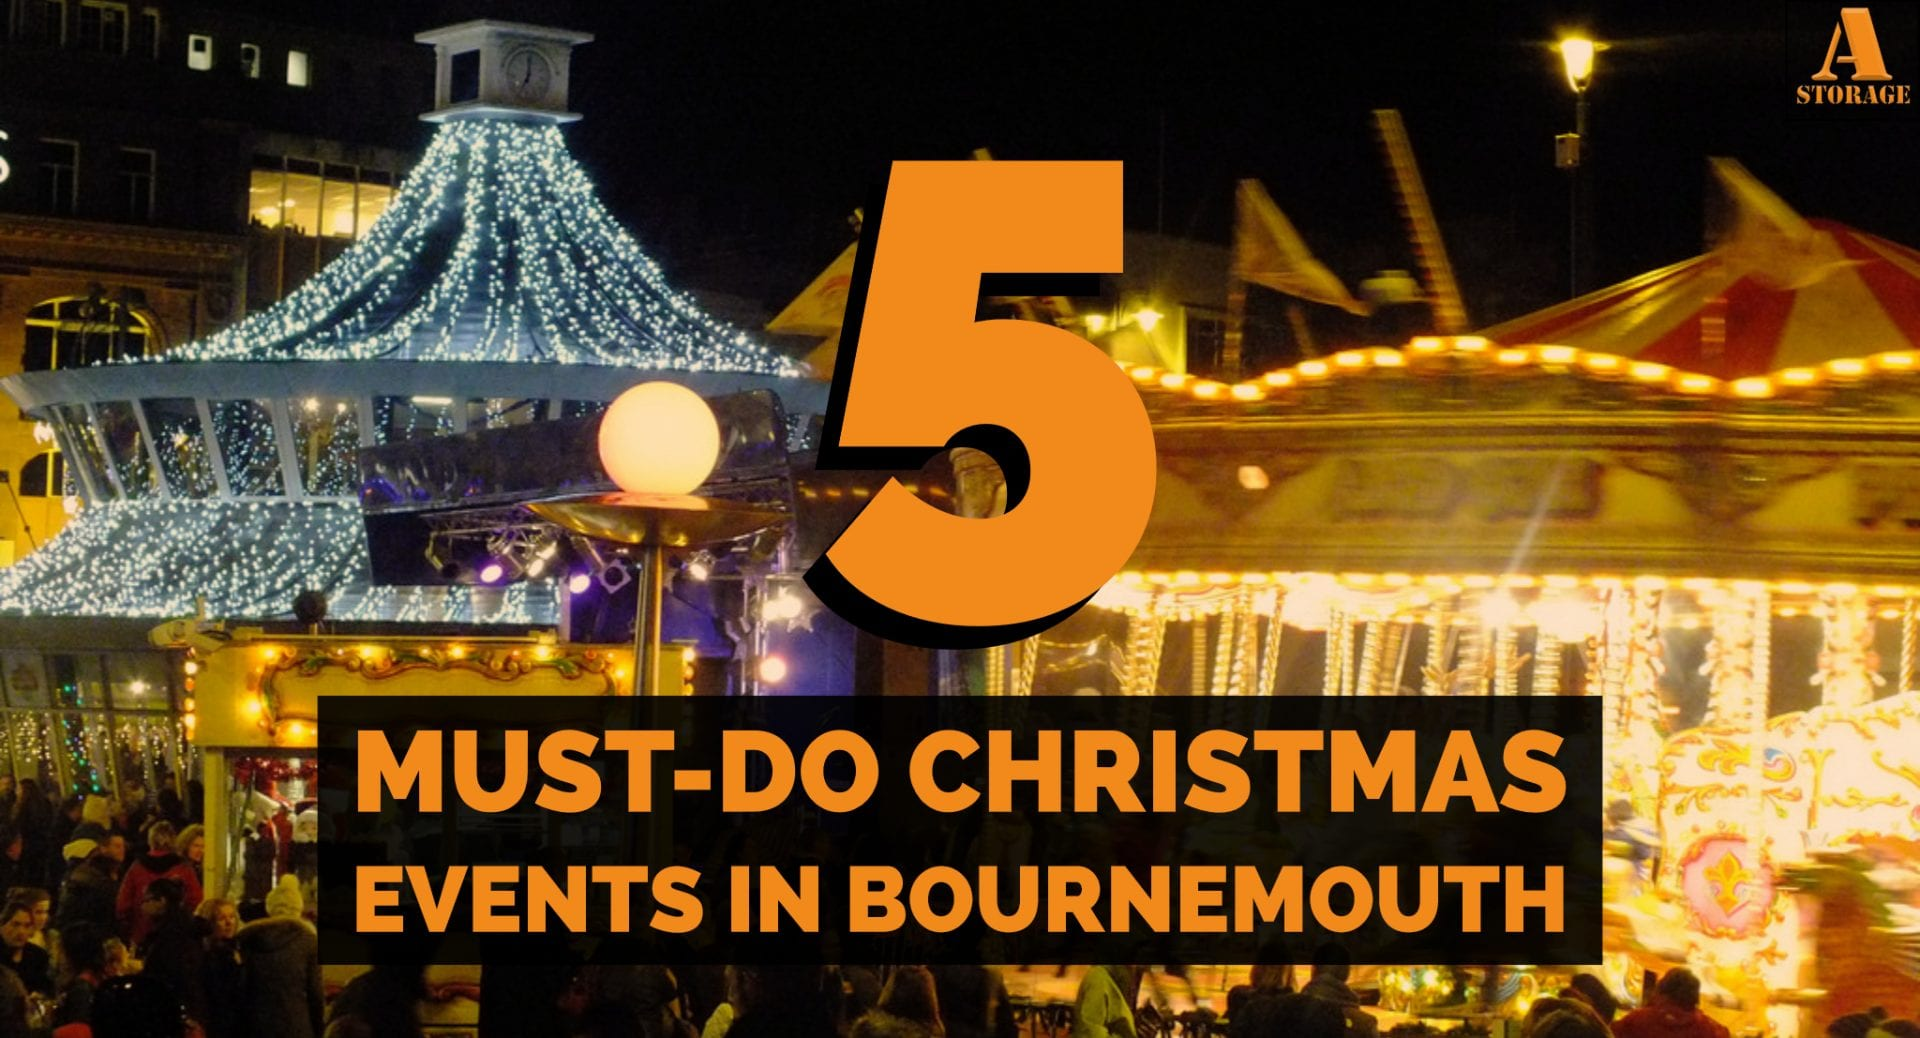 Christmas events in Bournemouth